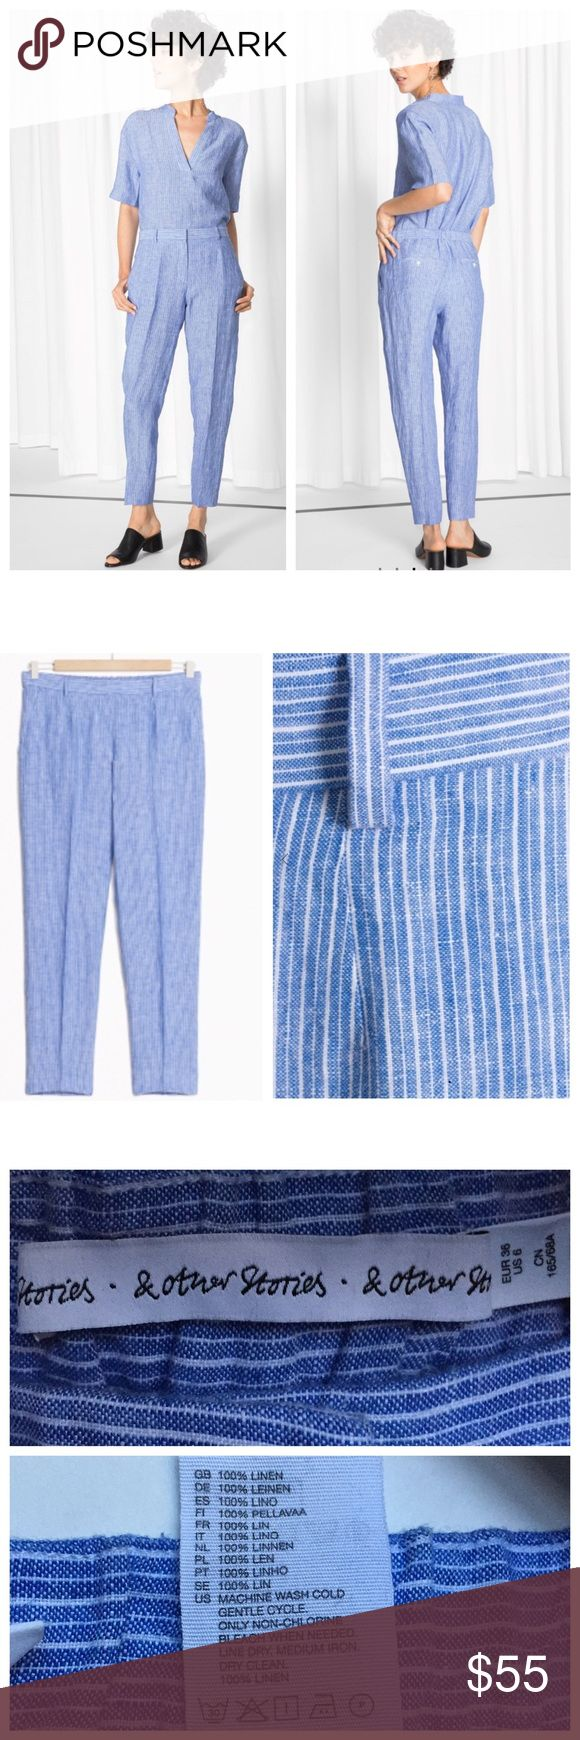 """30% OFF BUNDLES & other stories Stripe Pants EUC & other stories is the coolest """"it girl"""" brand from NYC. These pants instantly SOLD OUT online and in stores. Waist:14"""" Inseam:15"""" Total Length:25"""" All measurements are taken with the item laid flat.  EUC (Excellent Used Condition) Fitted hips, anke length. If between sizes, go 1 size up. Material: see photos 30% off on bundles // I ship same-day from pet/smoke-free home. Buy with confidence. I am a top seller with close to 500 5-star ratings…"""